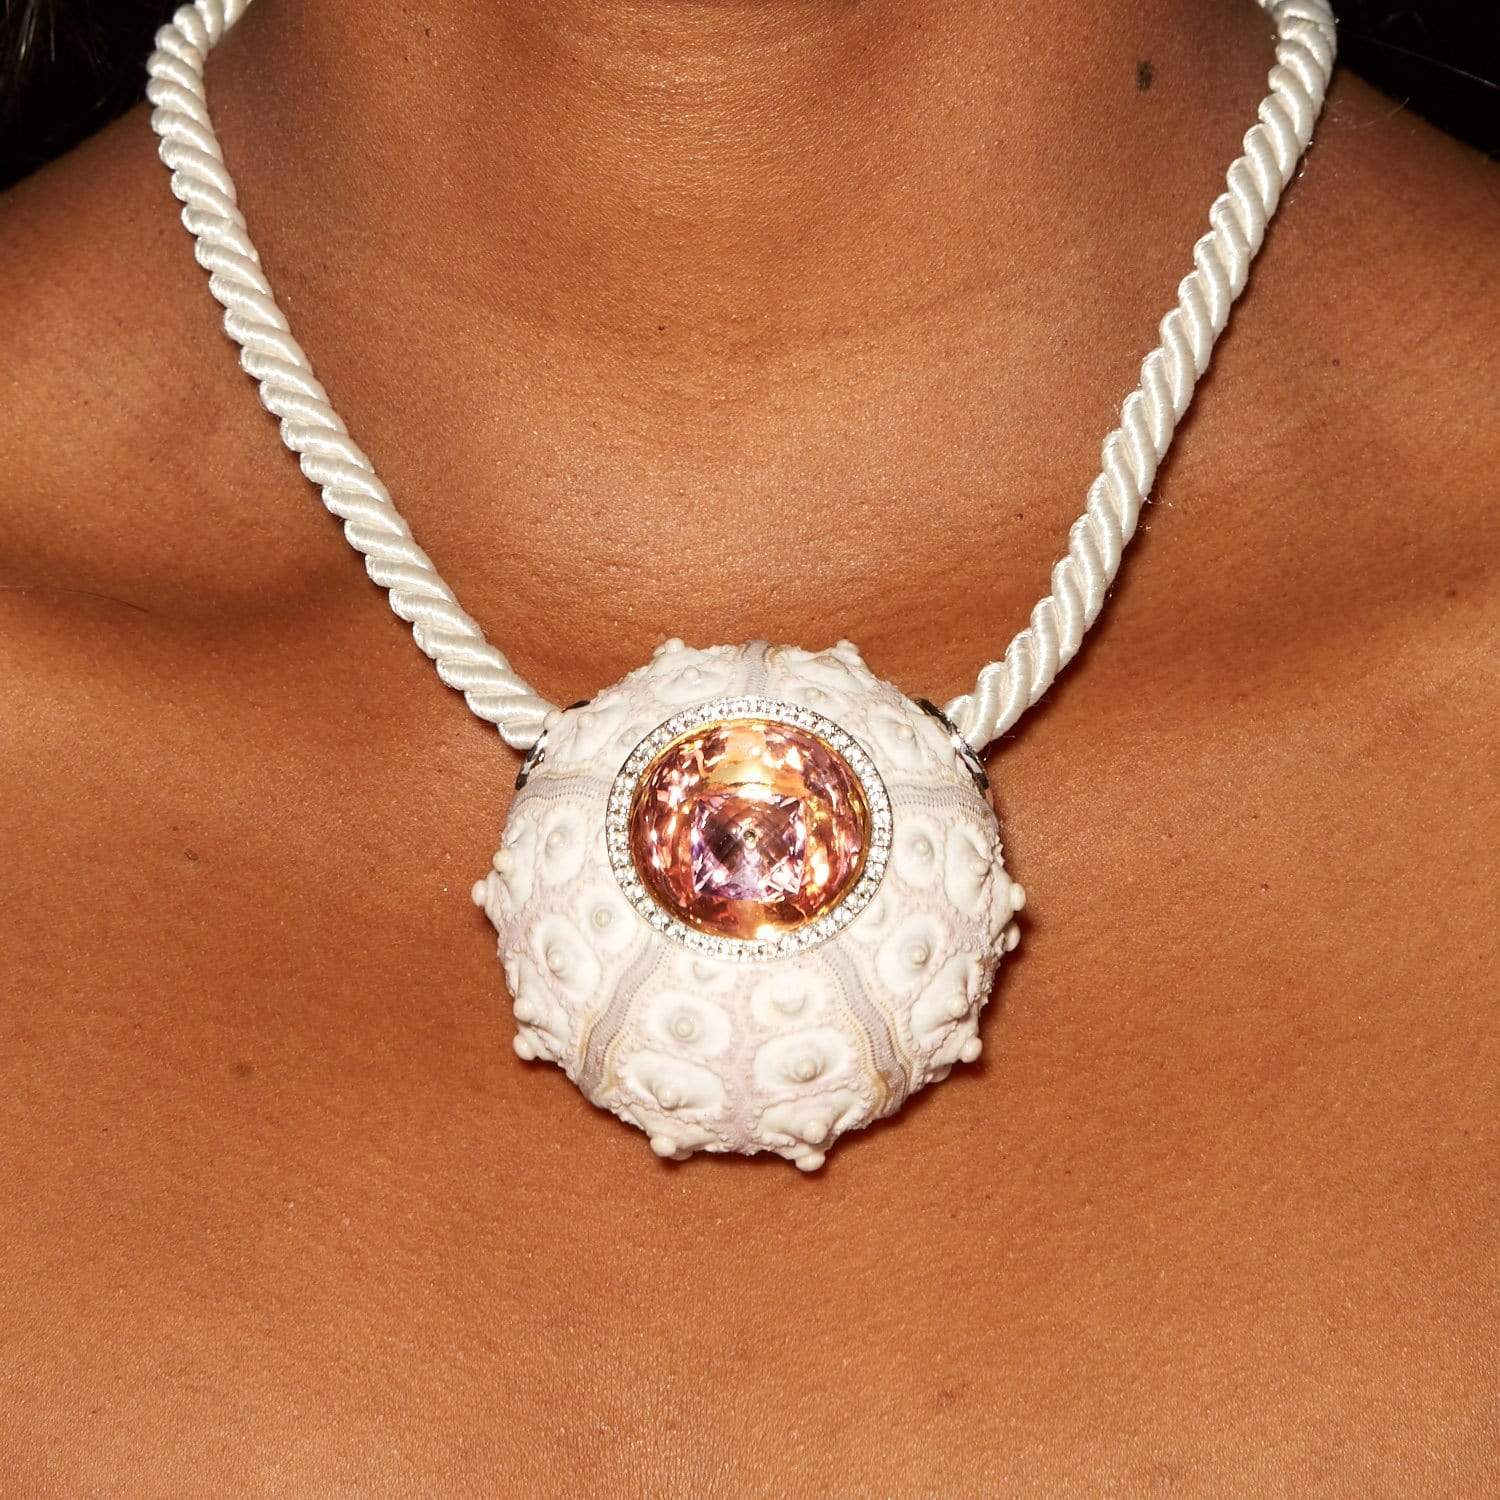 Coraline Pendant, Amethyst, Exclusive, Gold, Rhodium, Sapphire, silver, spo-disabled, StoneColor:White, Style:Fantasy Pendant